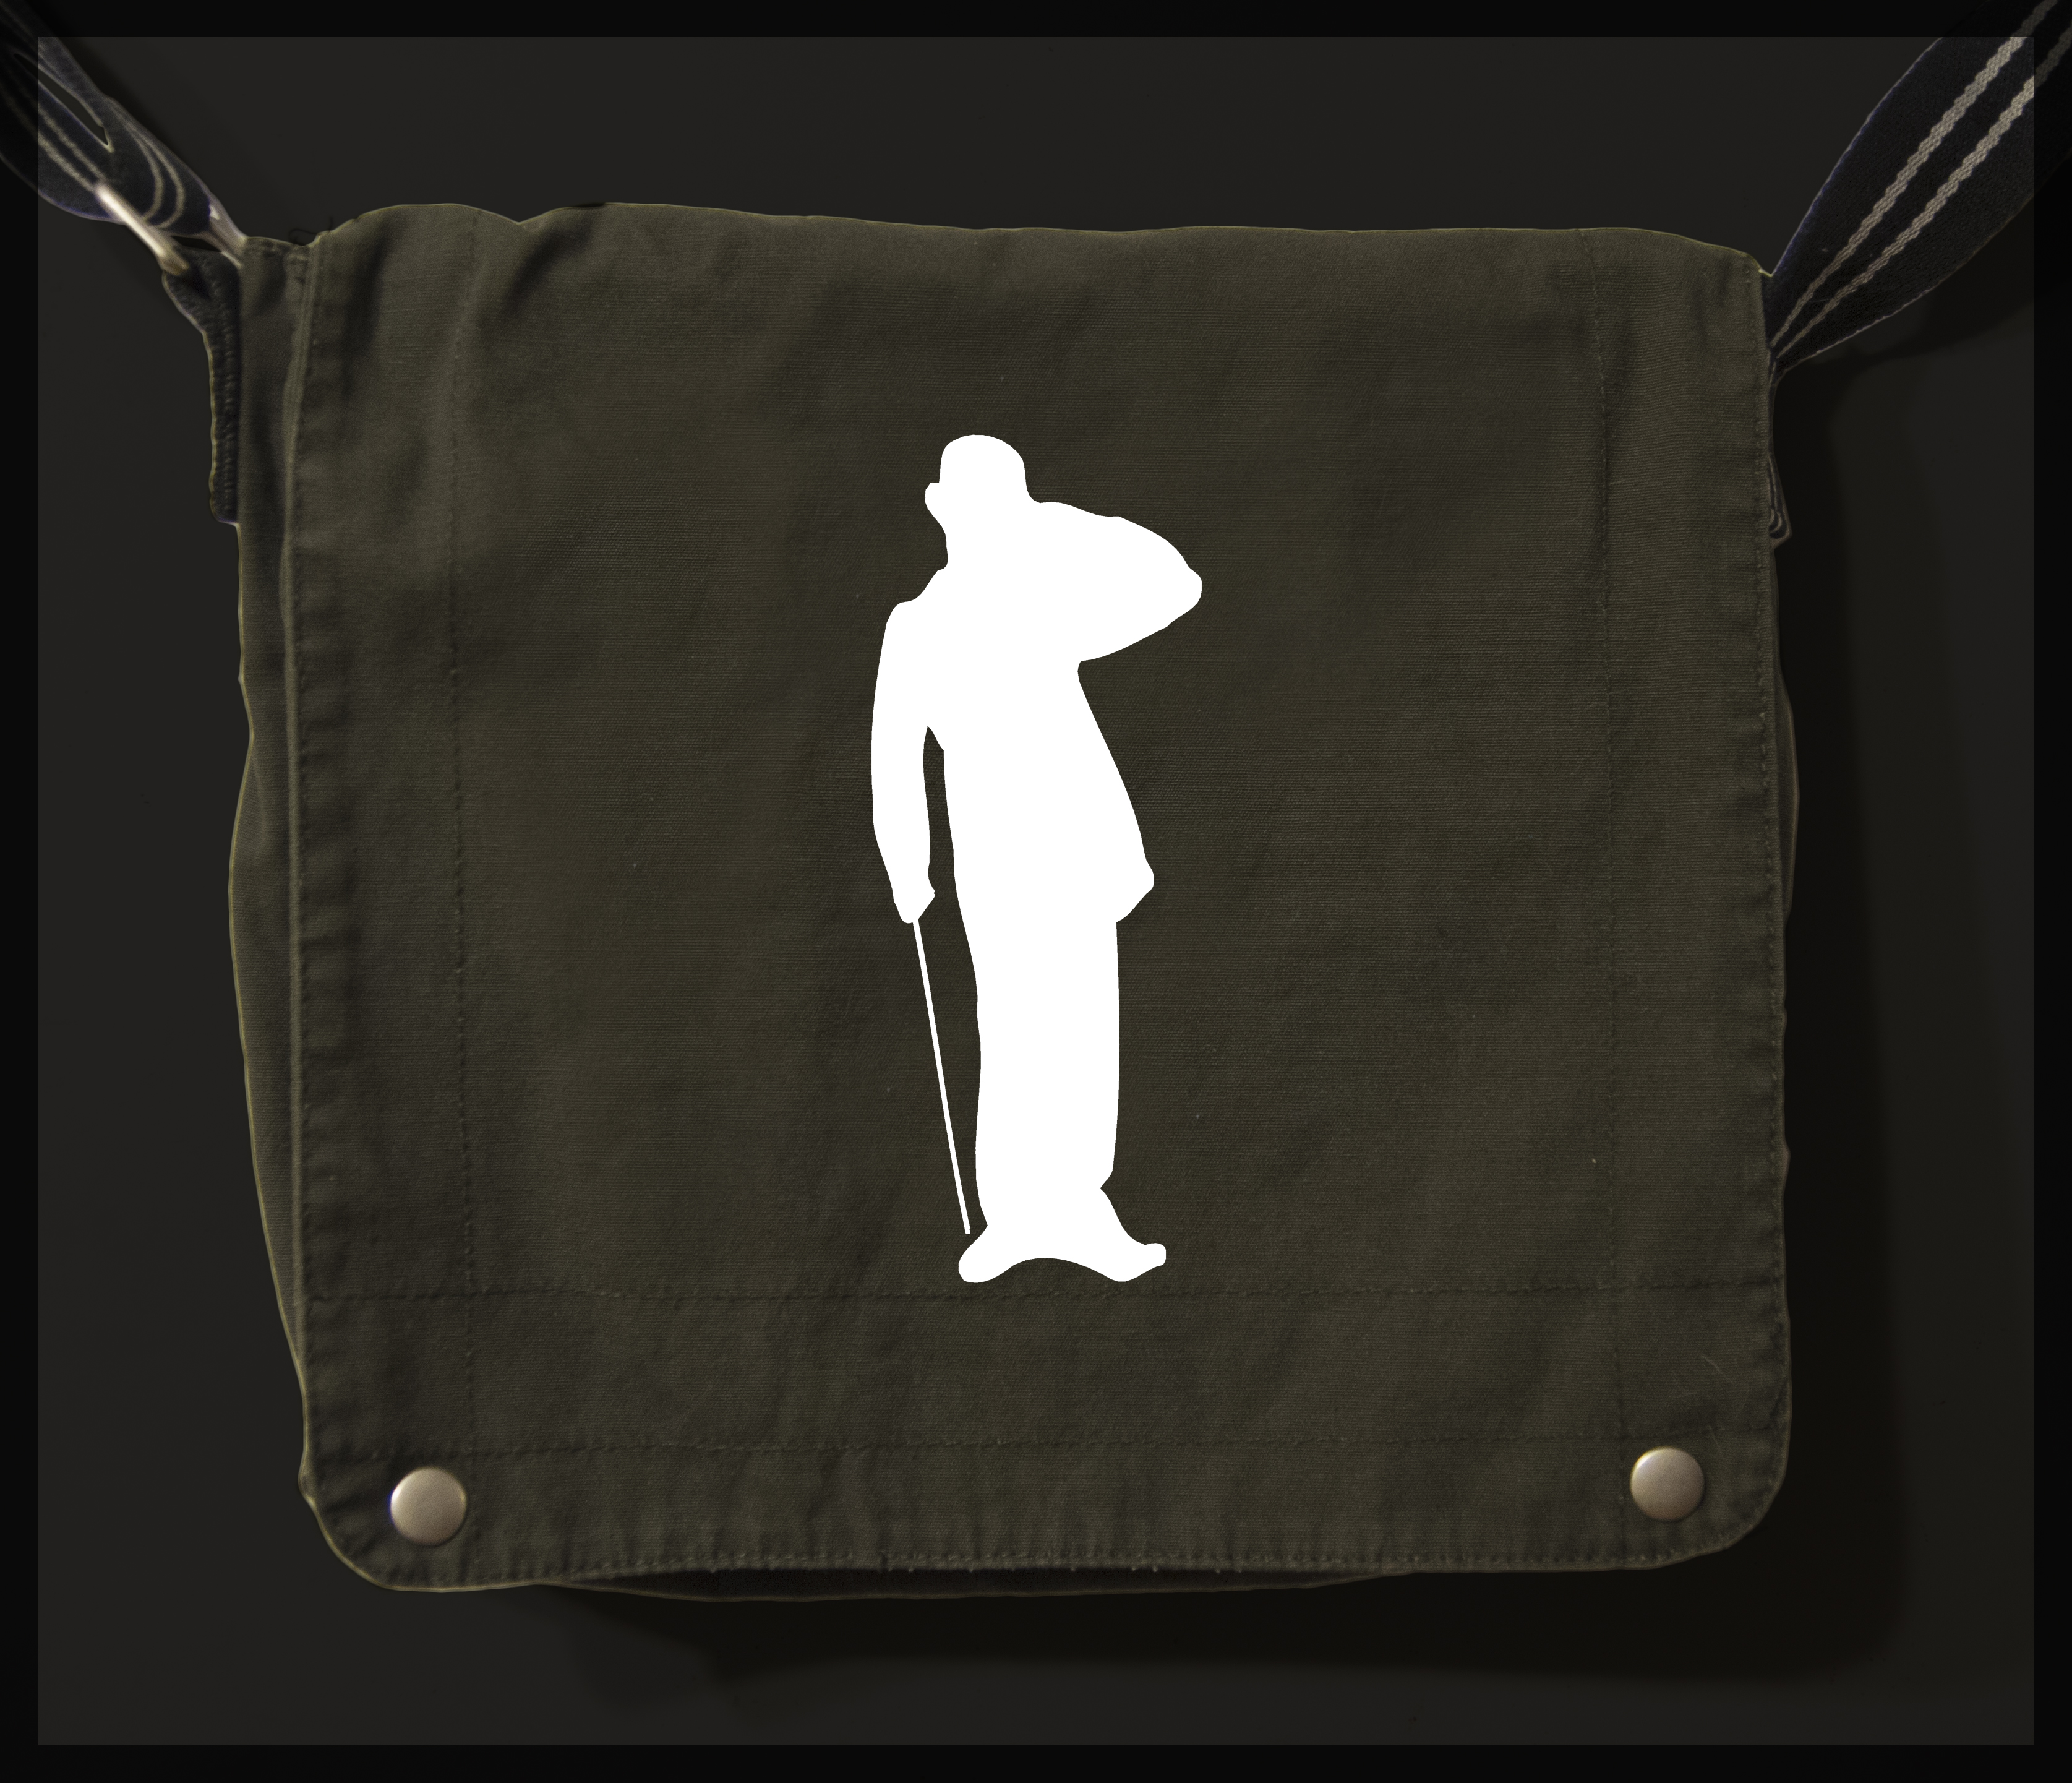 charlie chaplin messenger bag